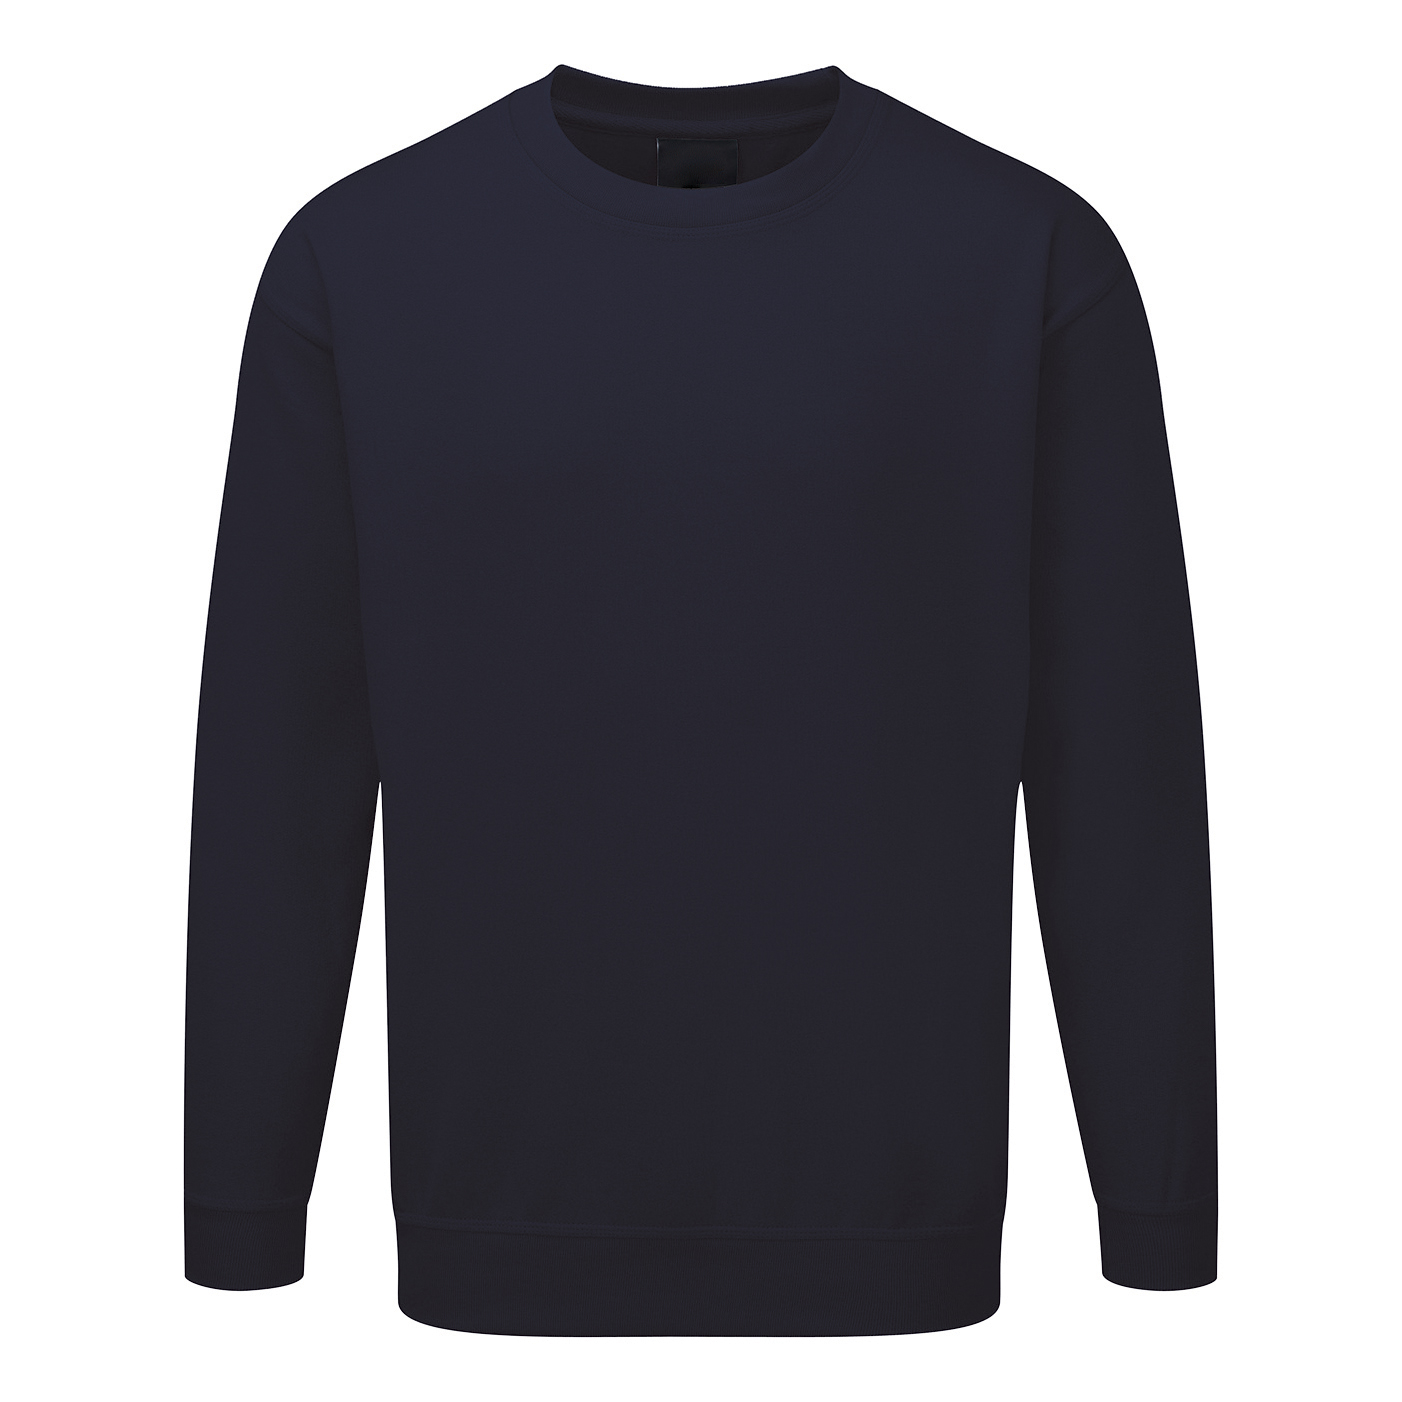 Click Workwear Sweatshirt Polycotton 300gsm 3XL Navy Blue Ref CLPCSNXXXL 1-3 Days Lead Time